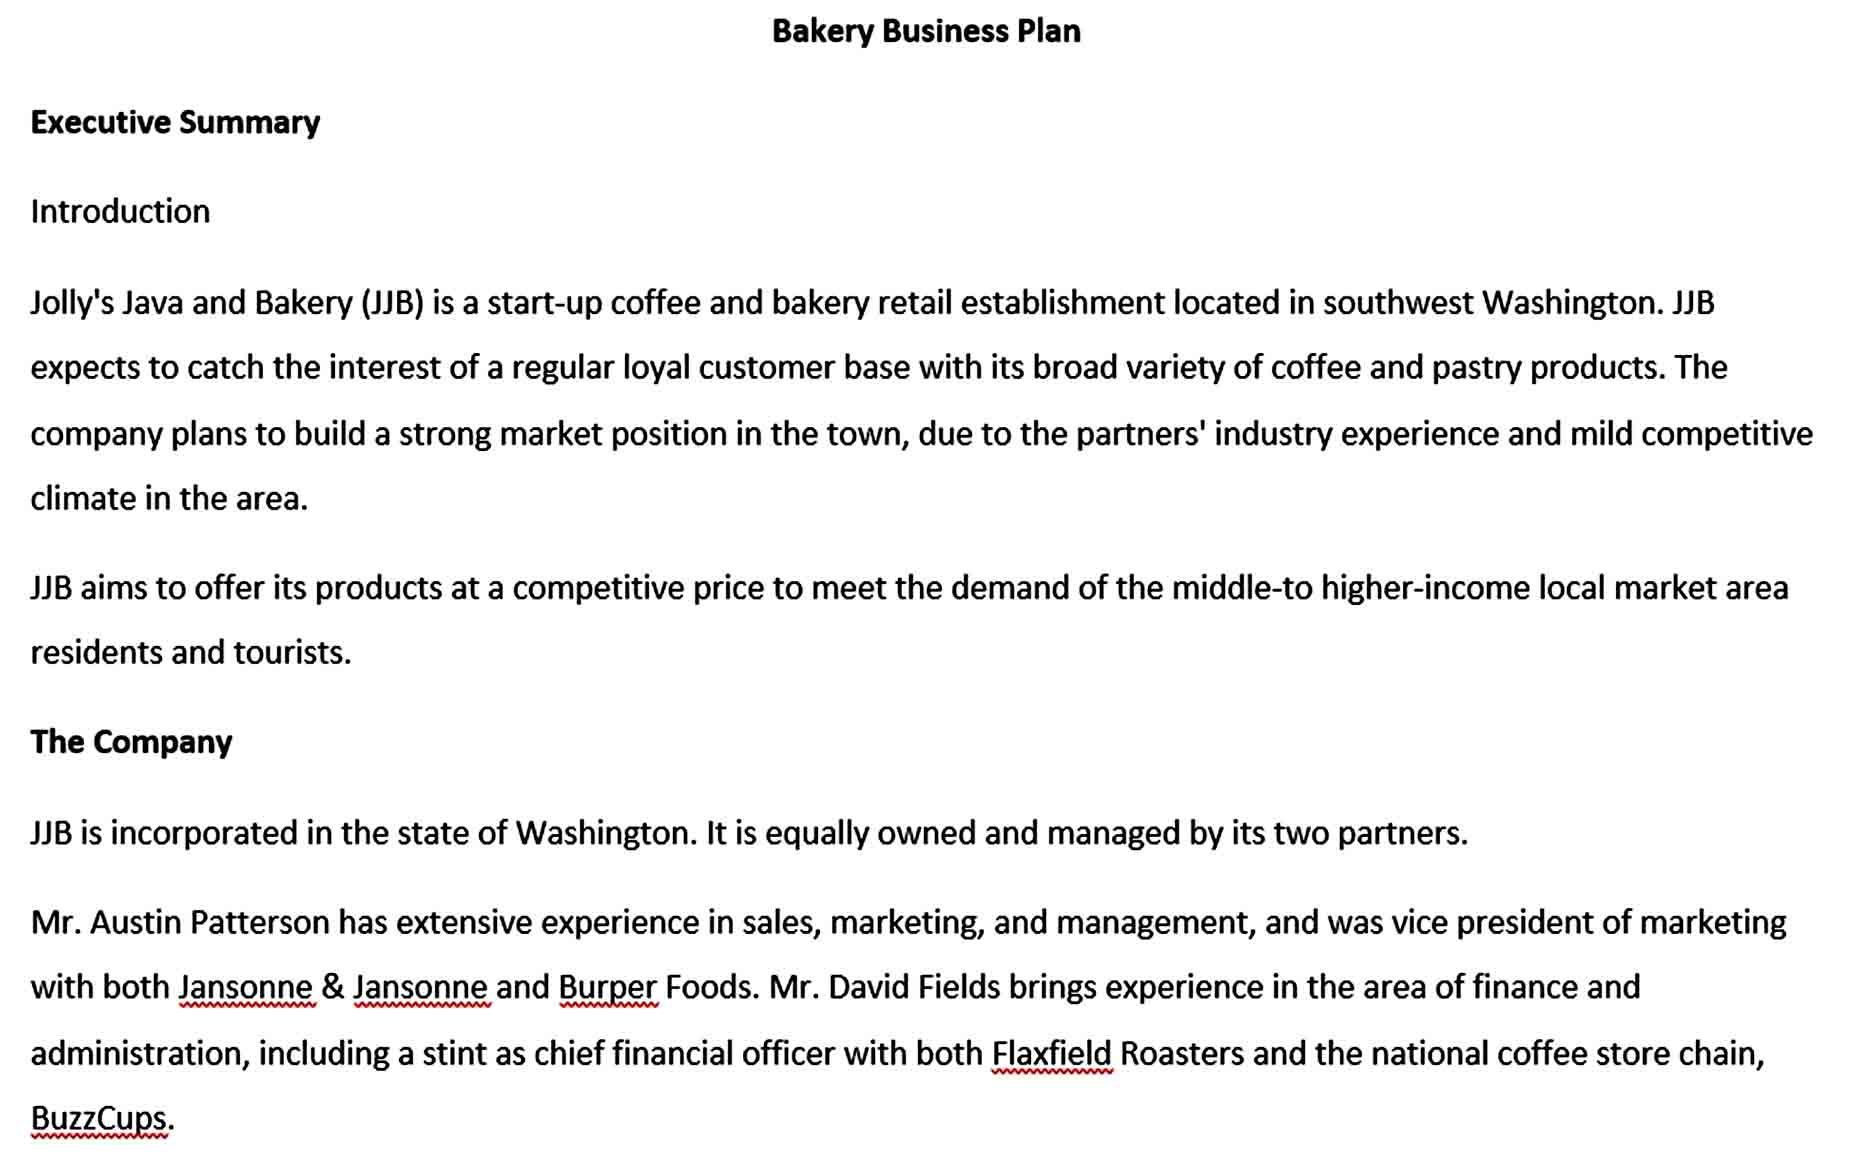 Bakery Business Plan Template in 2020 Bakery business